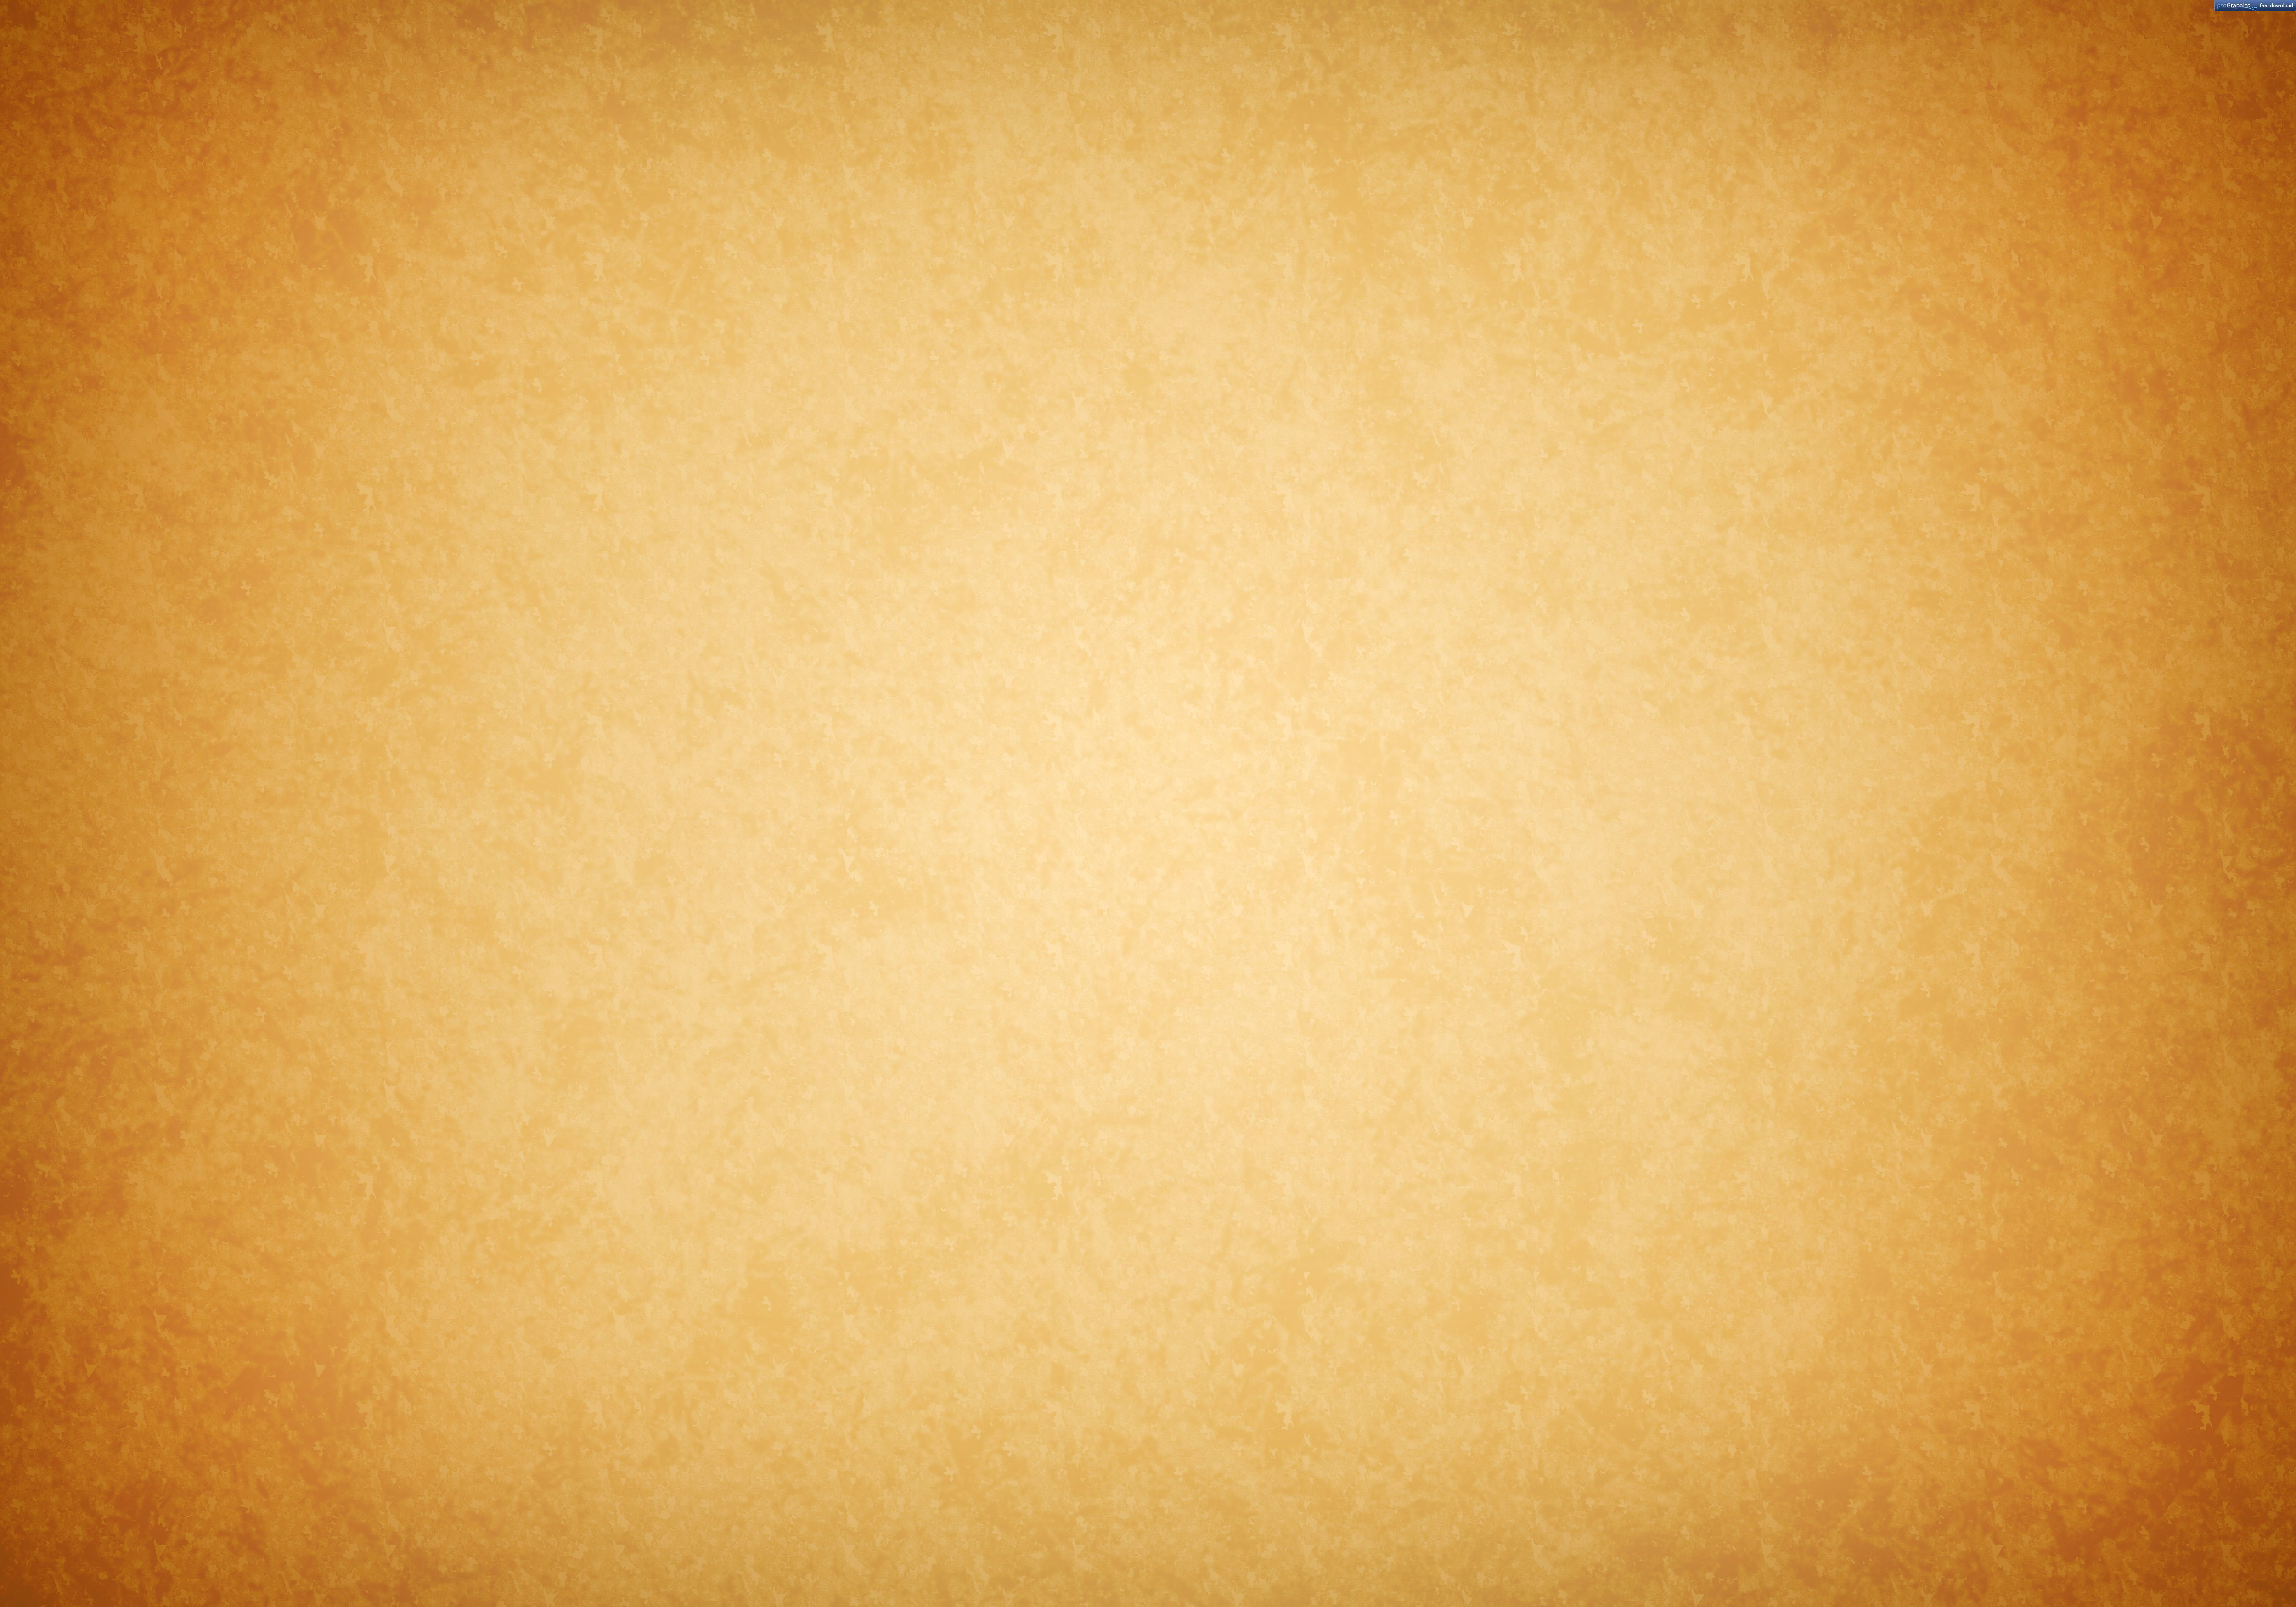 background designs | Old paper texture with a rough edges ...